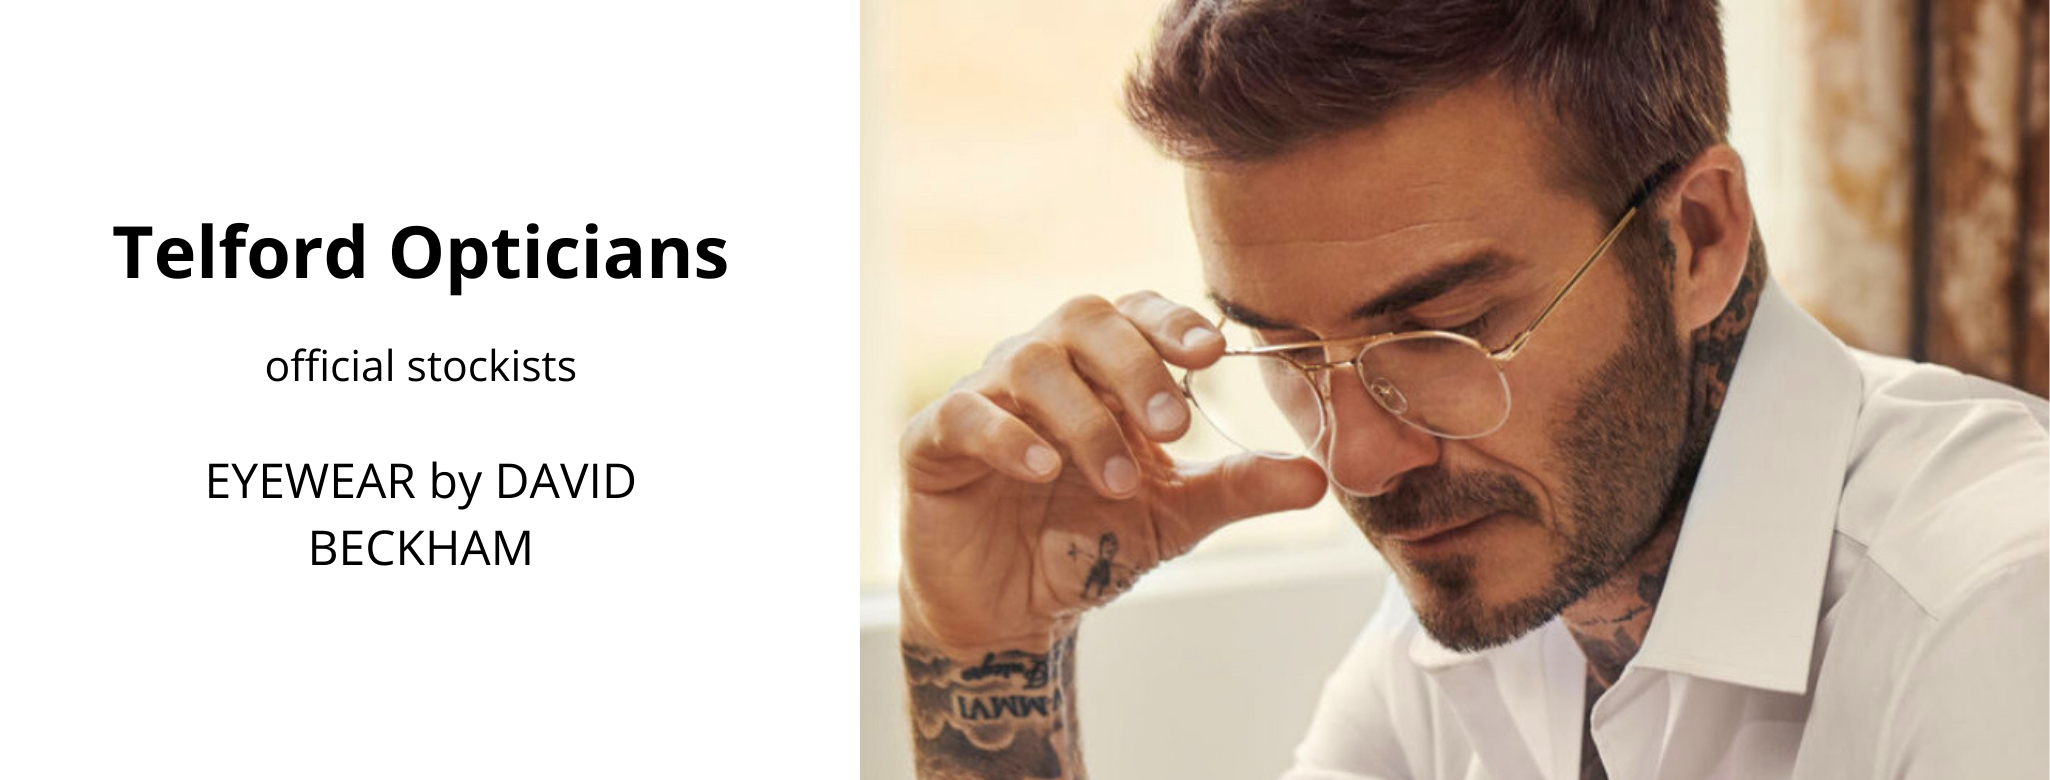 Telford Opticians, Official Stockists of Eyewear by David Beckham